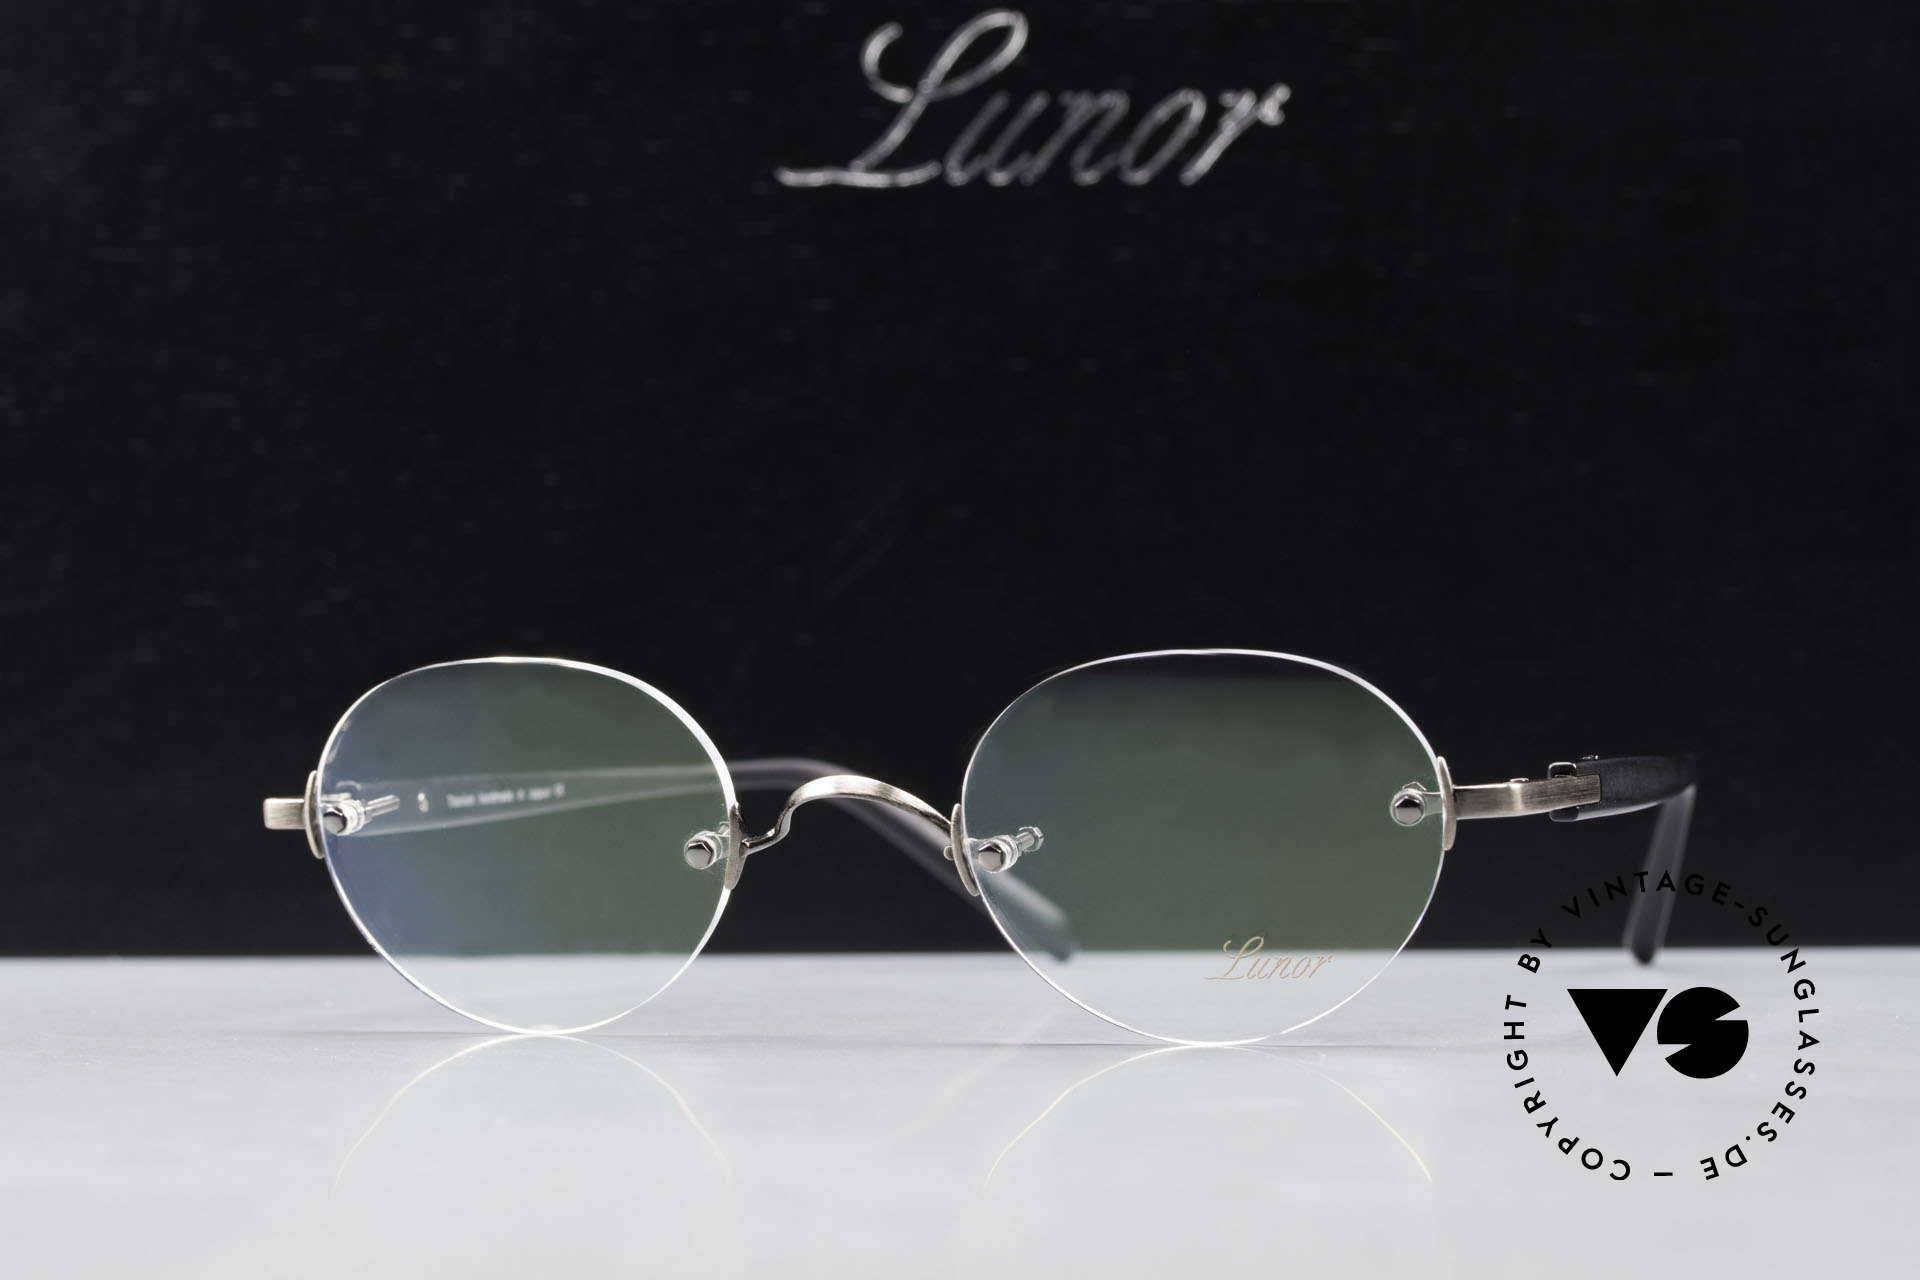 Lunor Classic V Panto AS Panto Rimless Frame Unisex, Size: small, Made for Men and Women